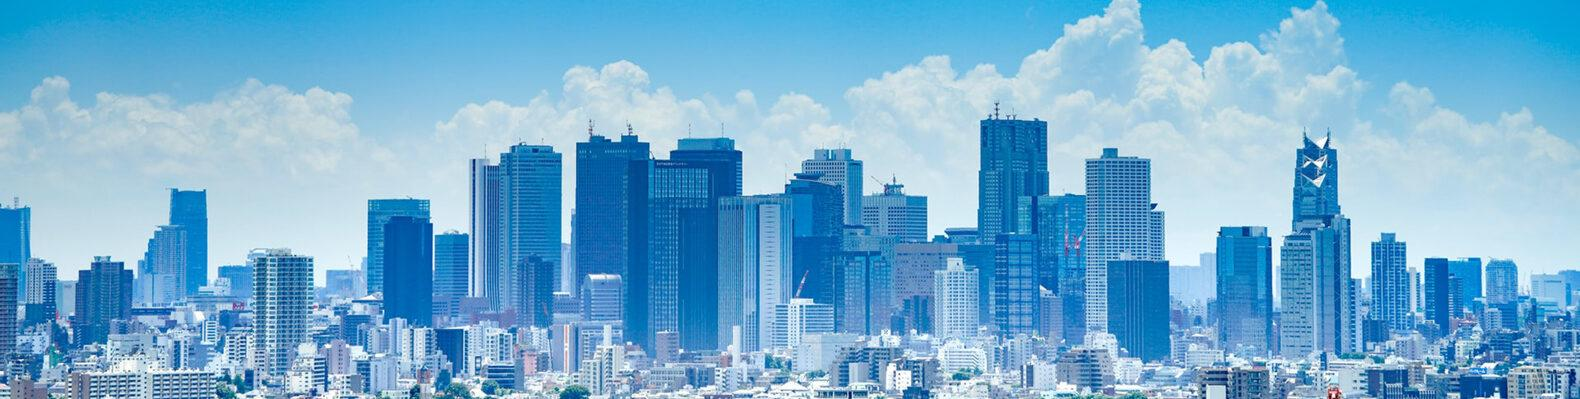 Tokyo skyline on summer day with blue skies